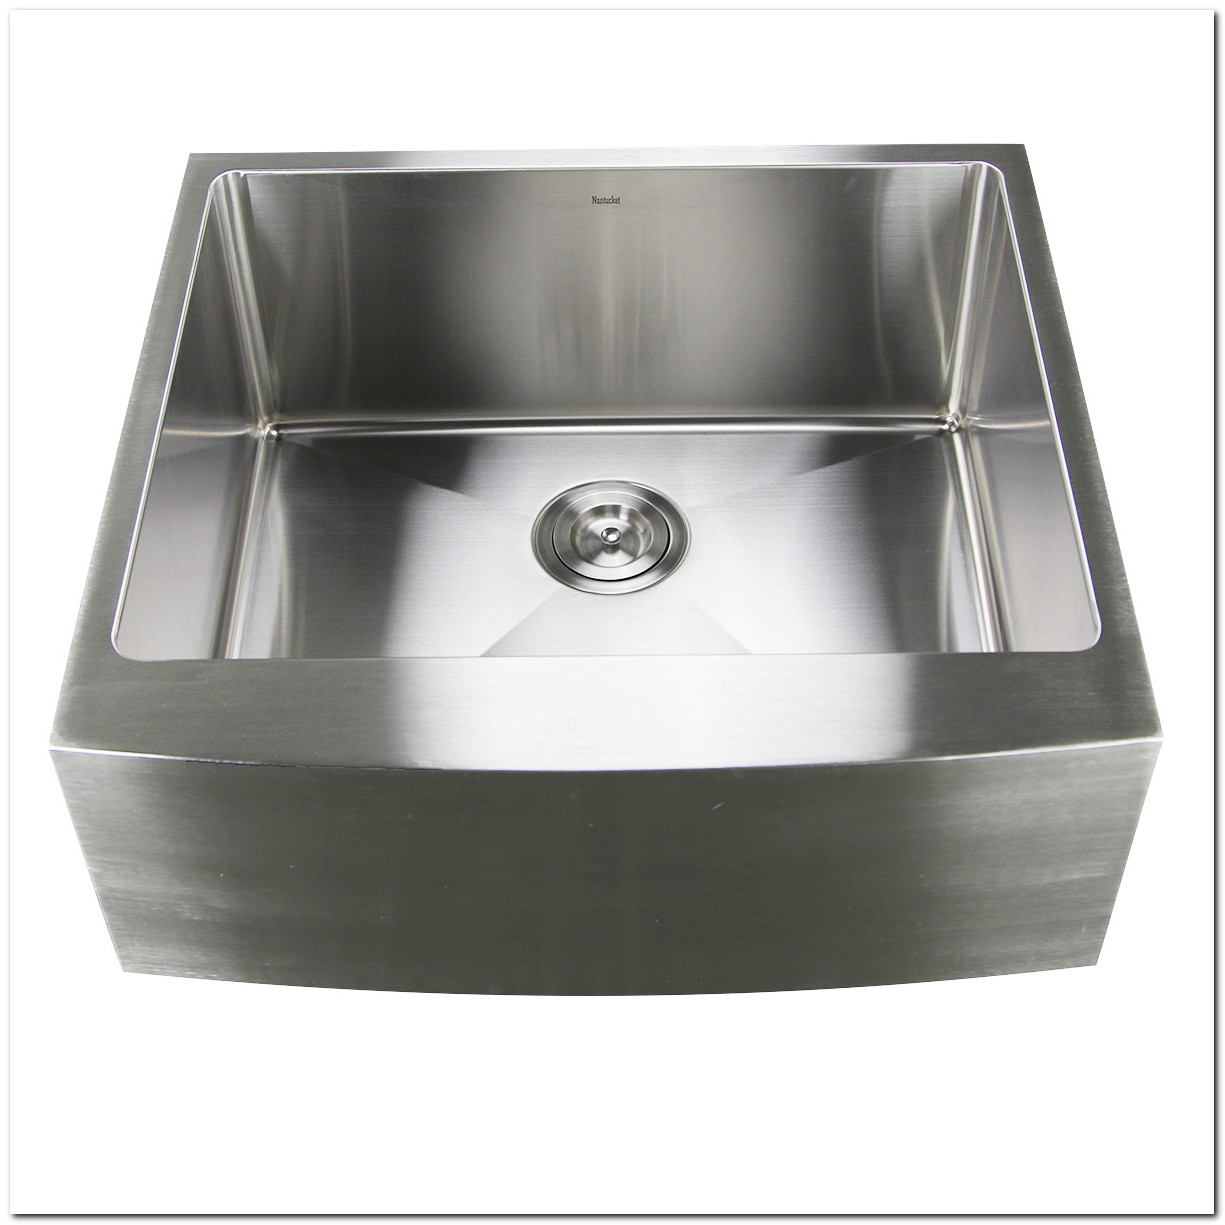 24 Inch Stainless Steel Apron Front Sink